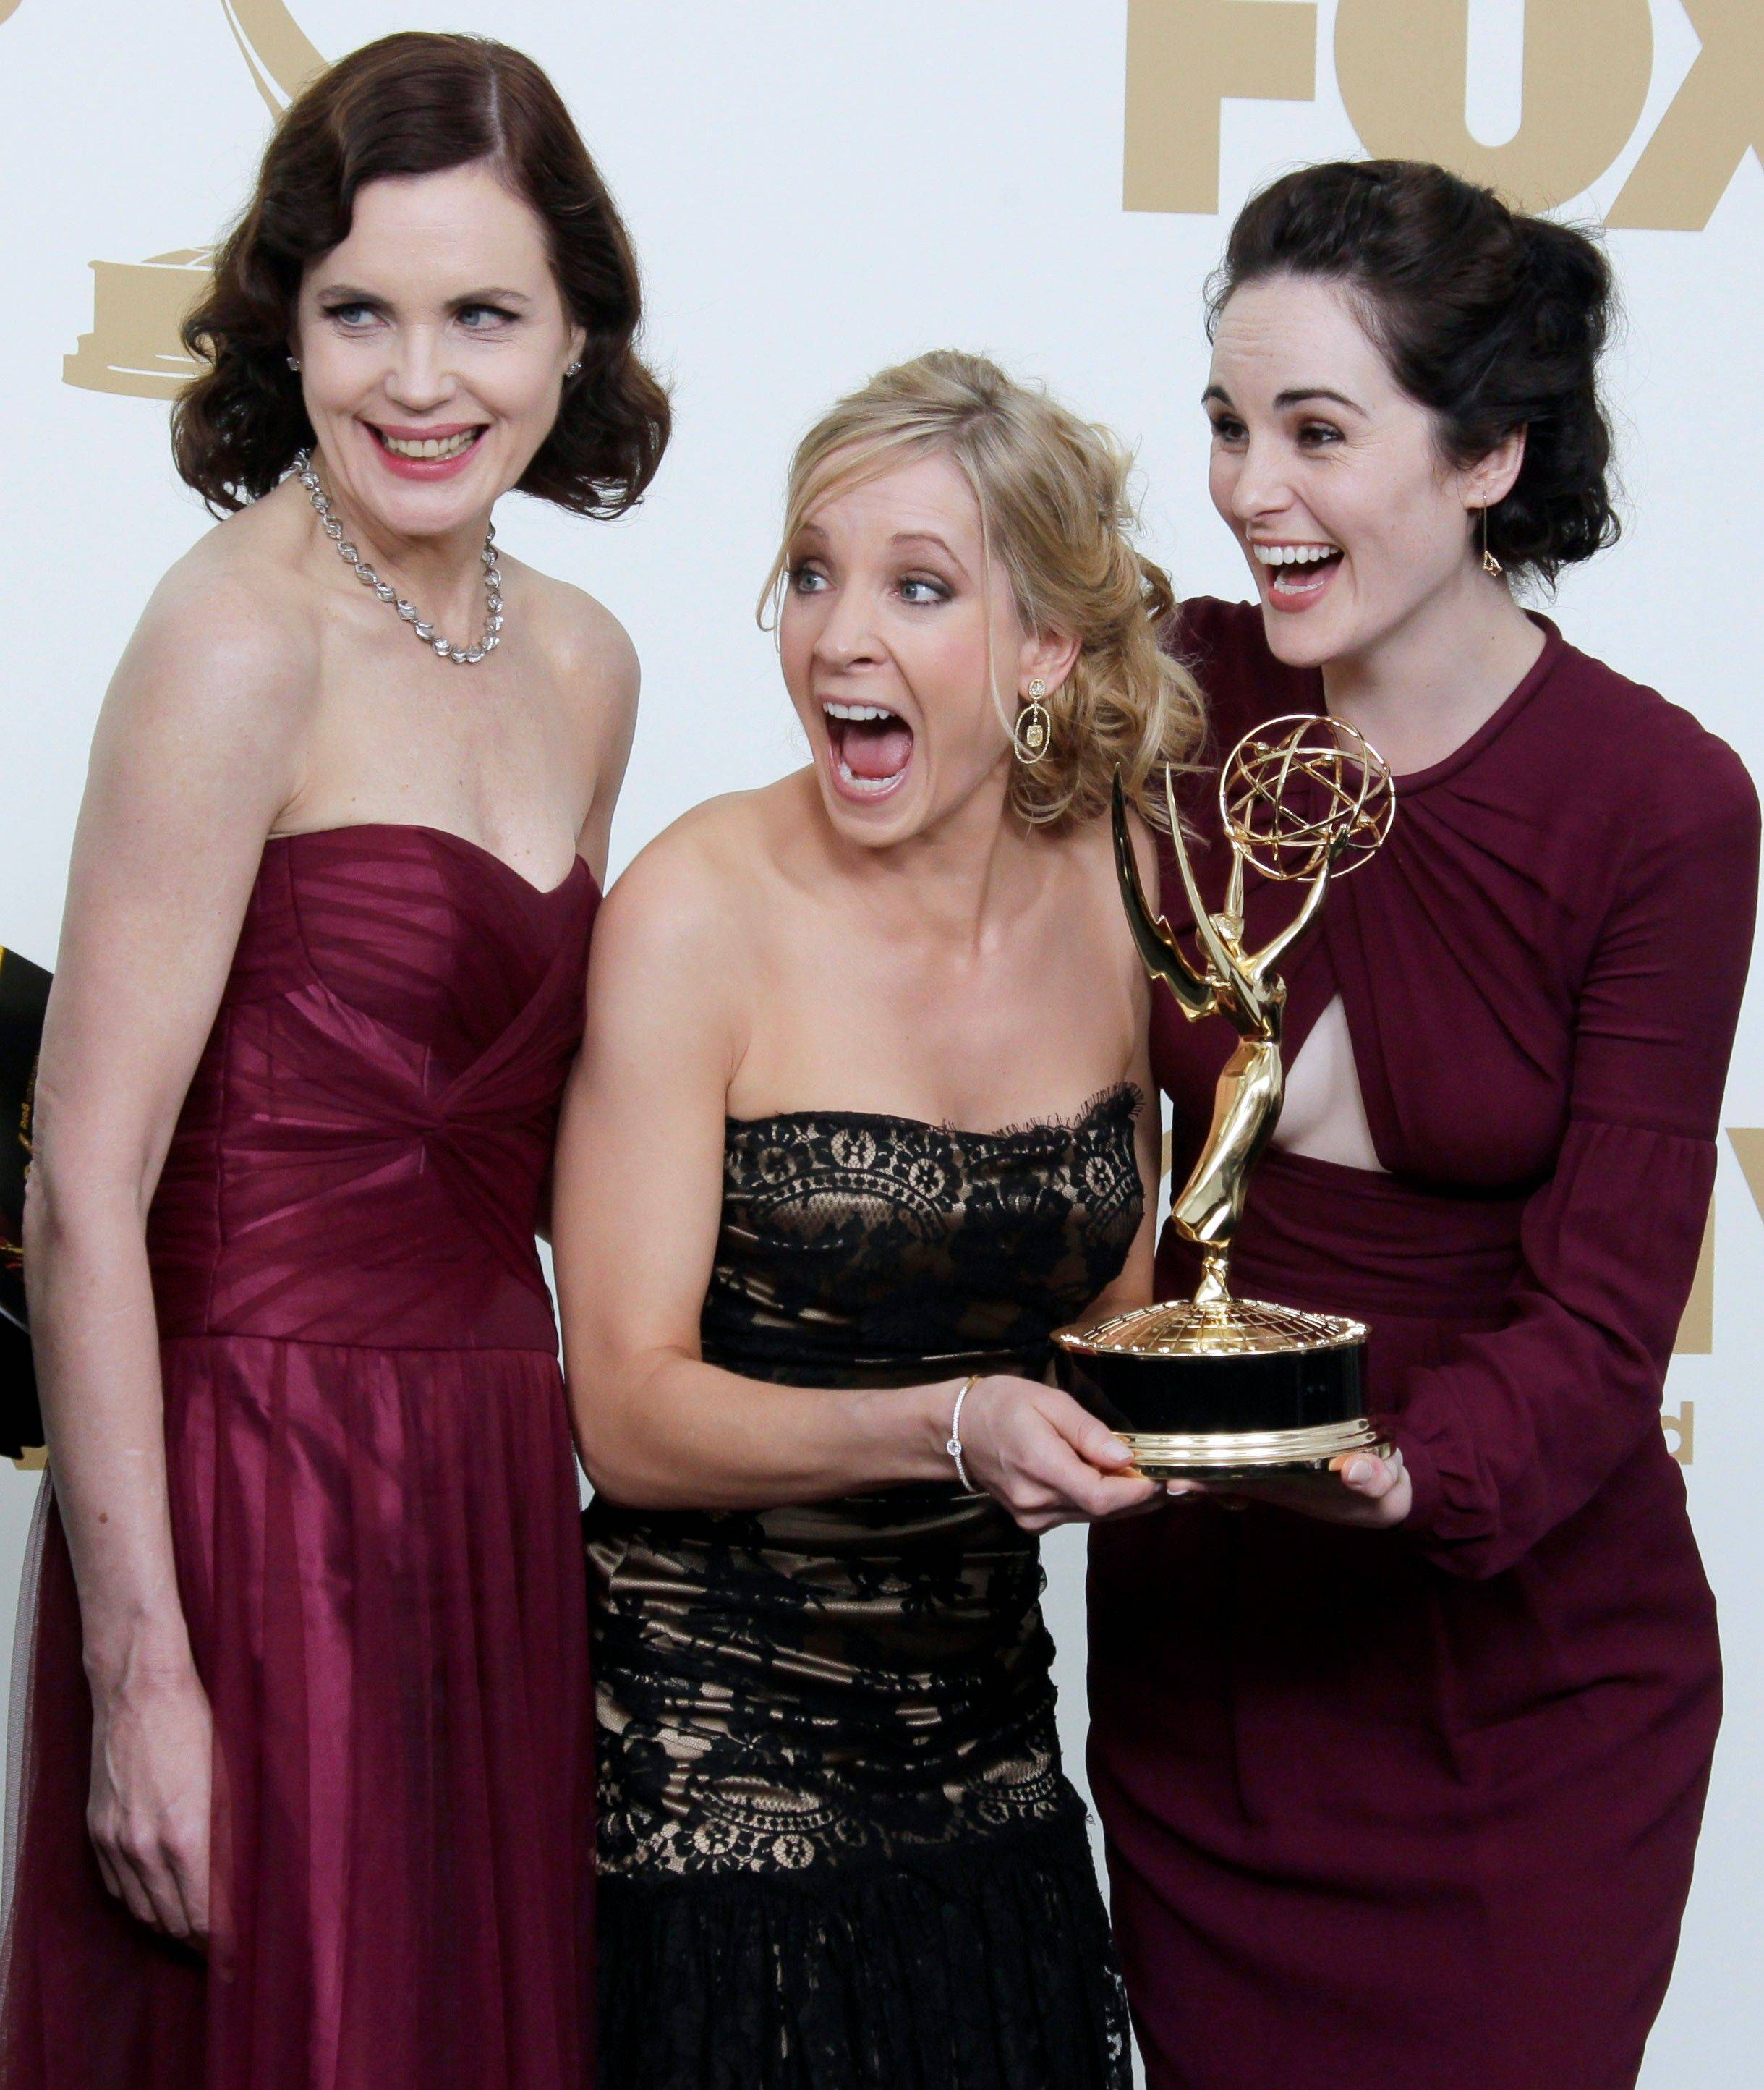 """Downton Abbey"" cast members from left, Elizabeth McGovern, Joanne Froggatt and Michelle Dockery pose for a photograph backstage. ""Downton Abbey"" won for outstanding writing and outstanding miniseries or movie."